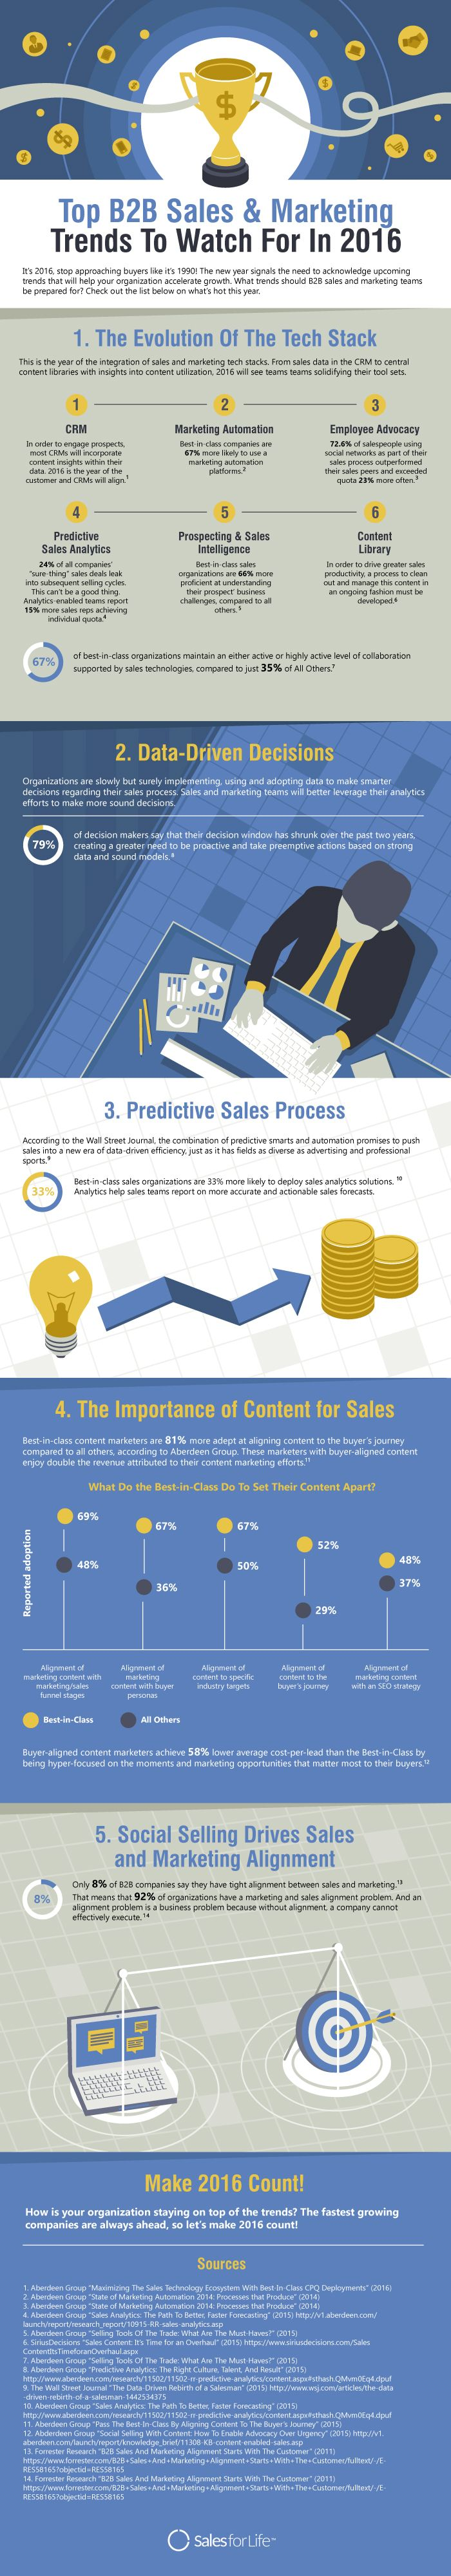 Check out this infographic on the top B2B sales and marketing trends to watch out for in 2016 to help your business accelerate growth.